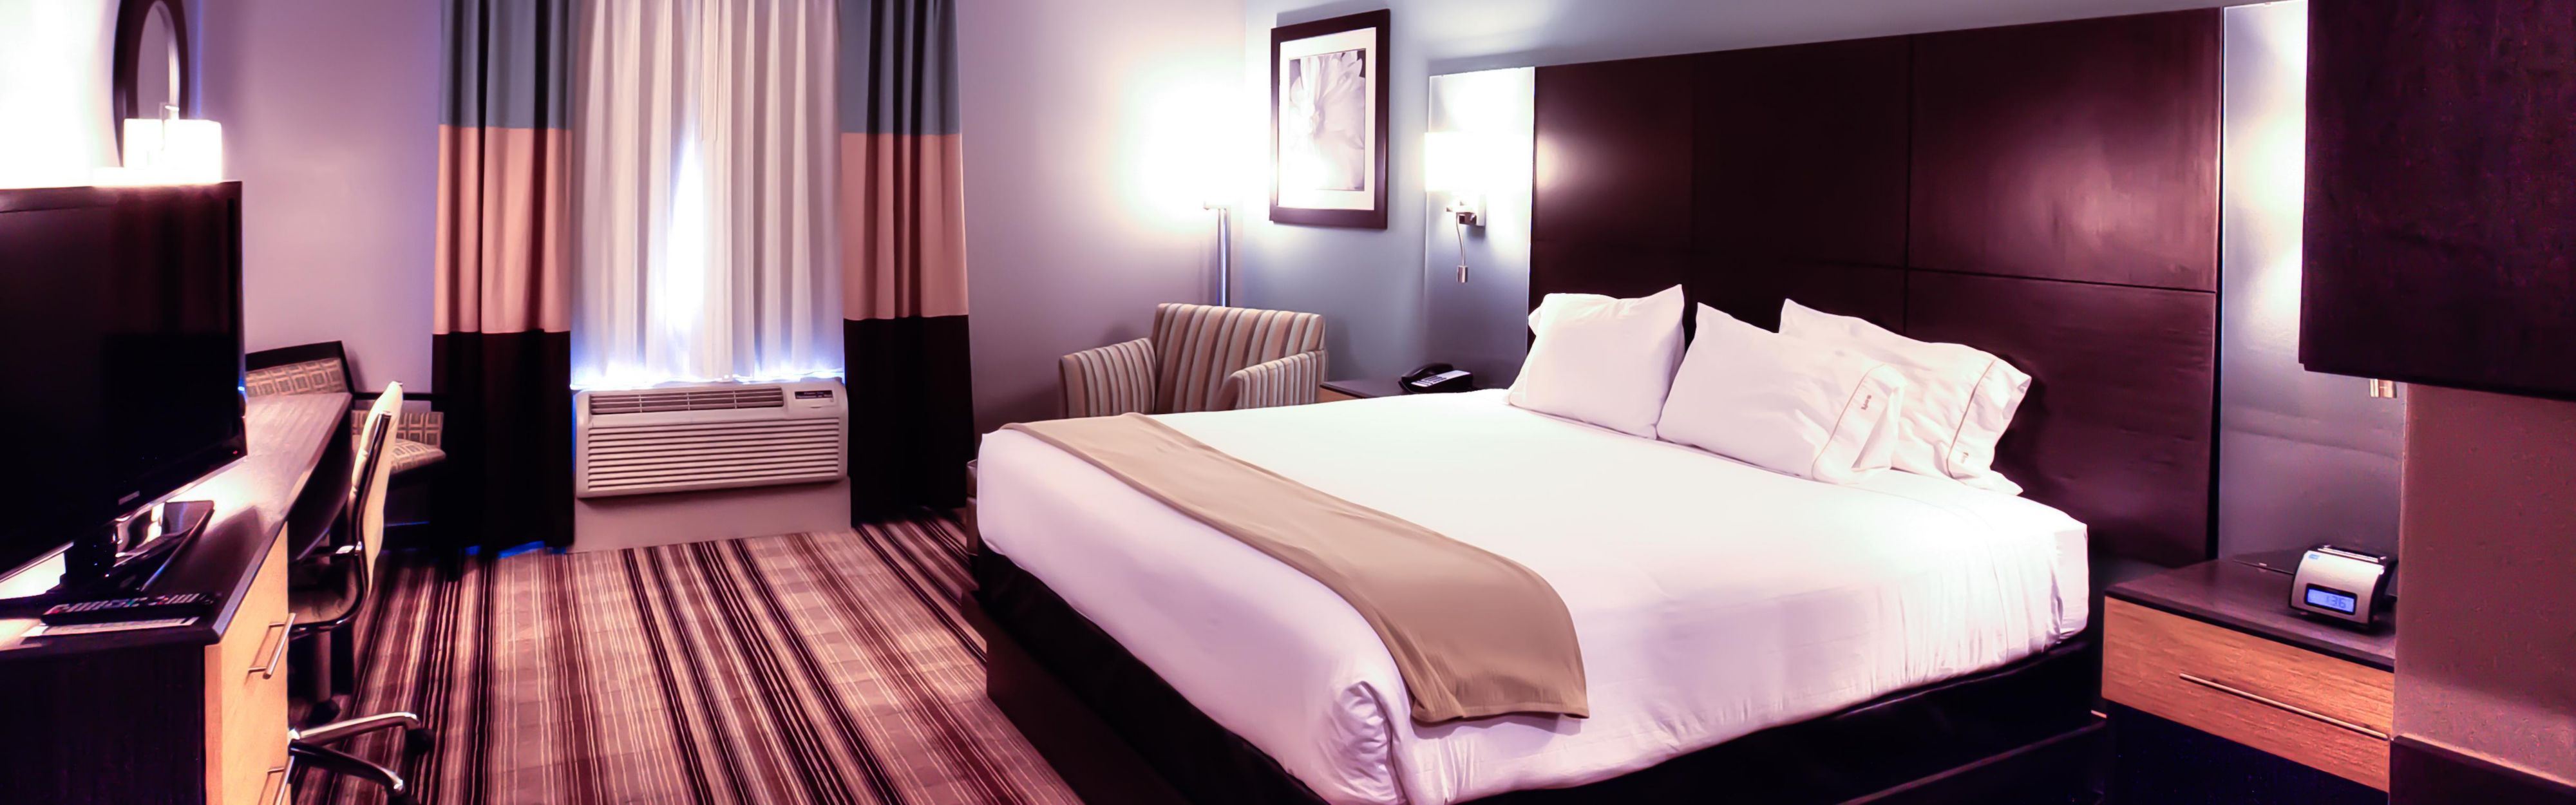 Holiday Inn Express & Suites Amarillo West image 1